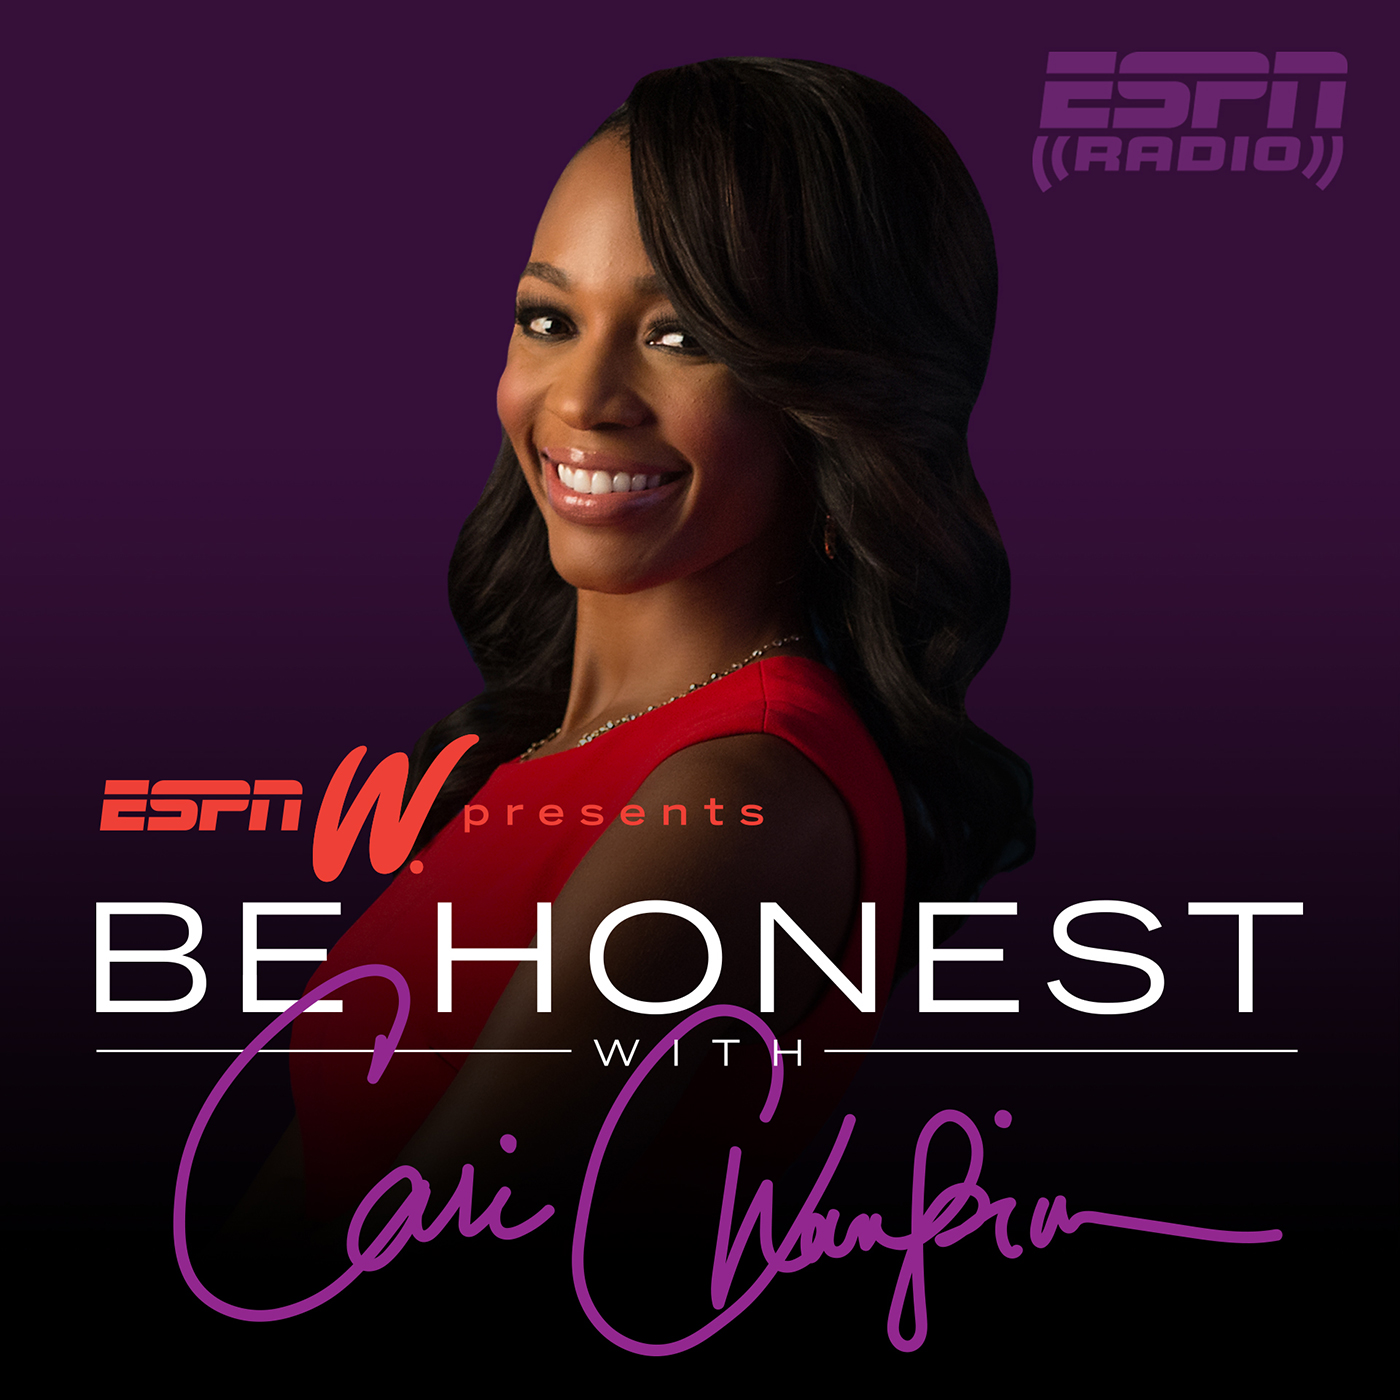 espnW presents Be Honest with Cari Champion